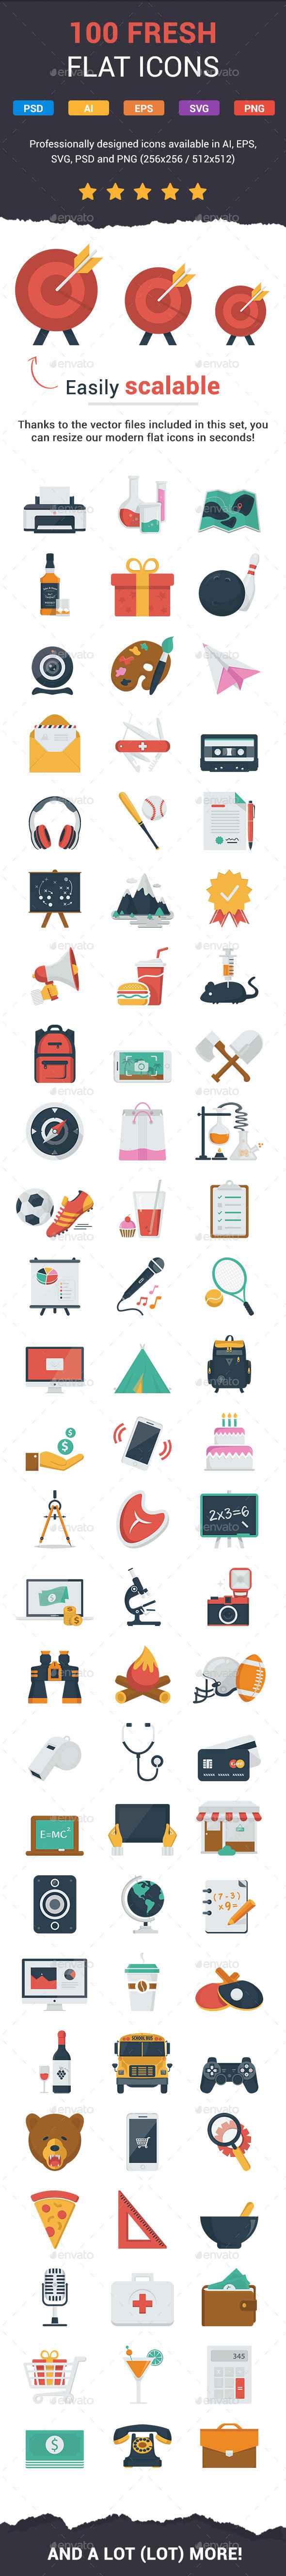 GraphicRiver 100 Fresh Flat Icons 11308669